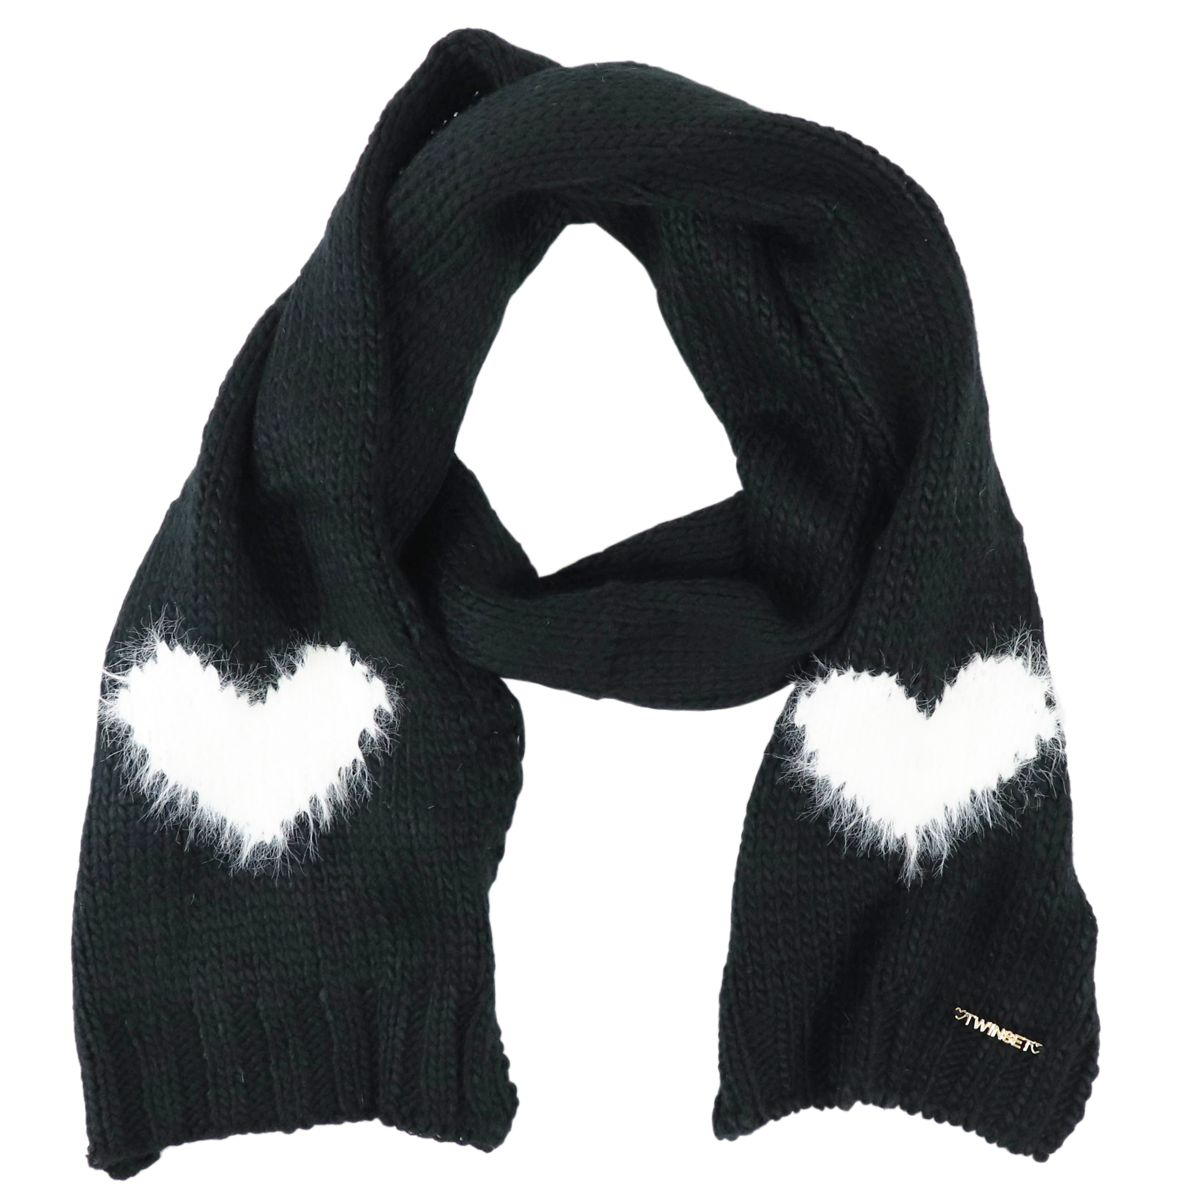 Knitted scarf with hearts detail Black Twin-Set